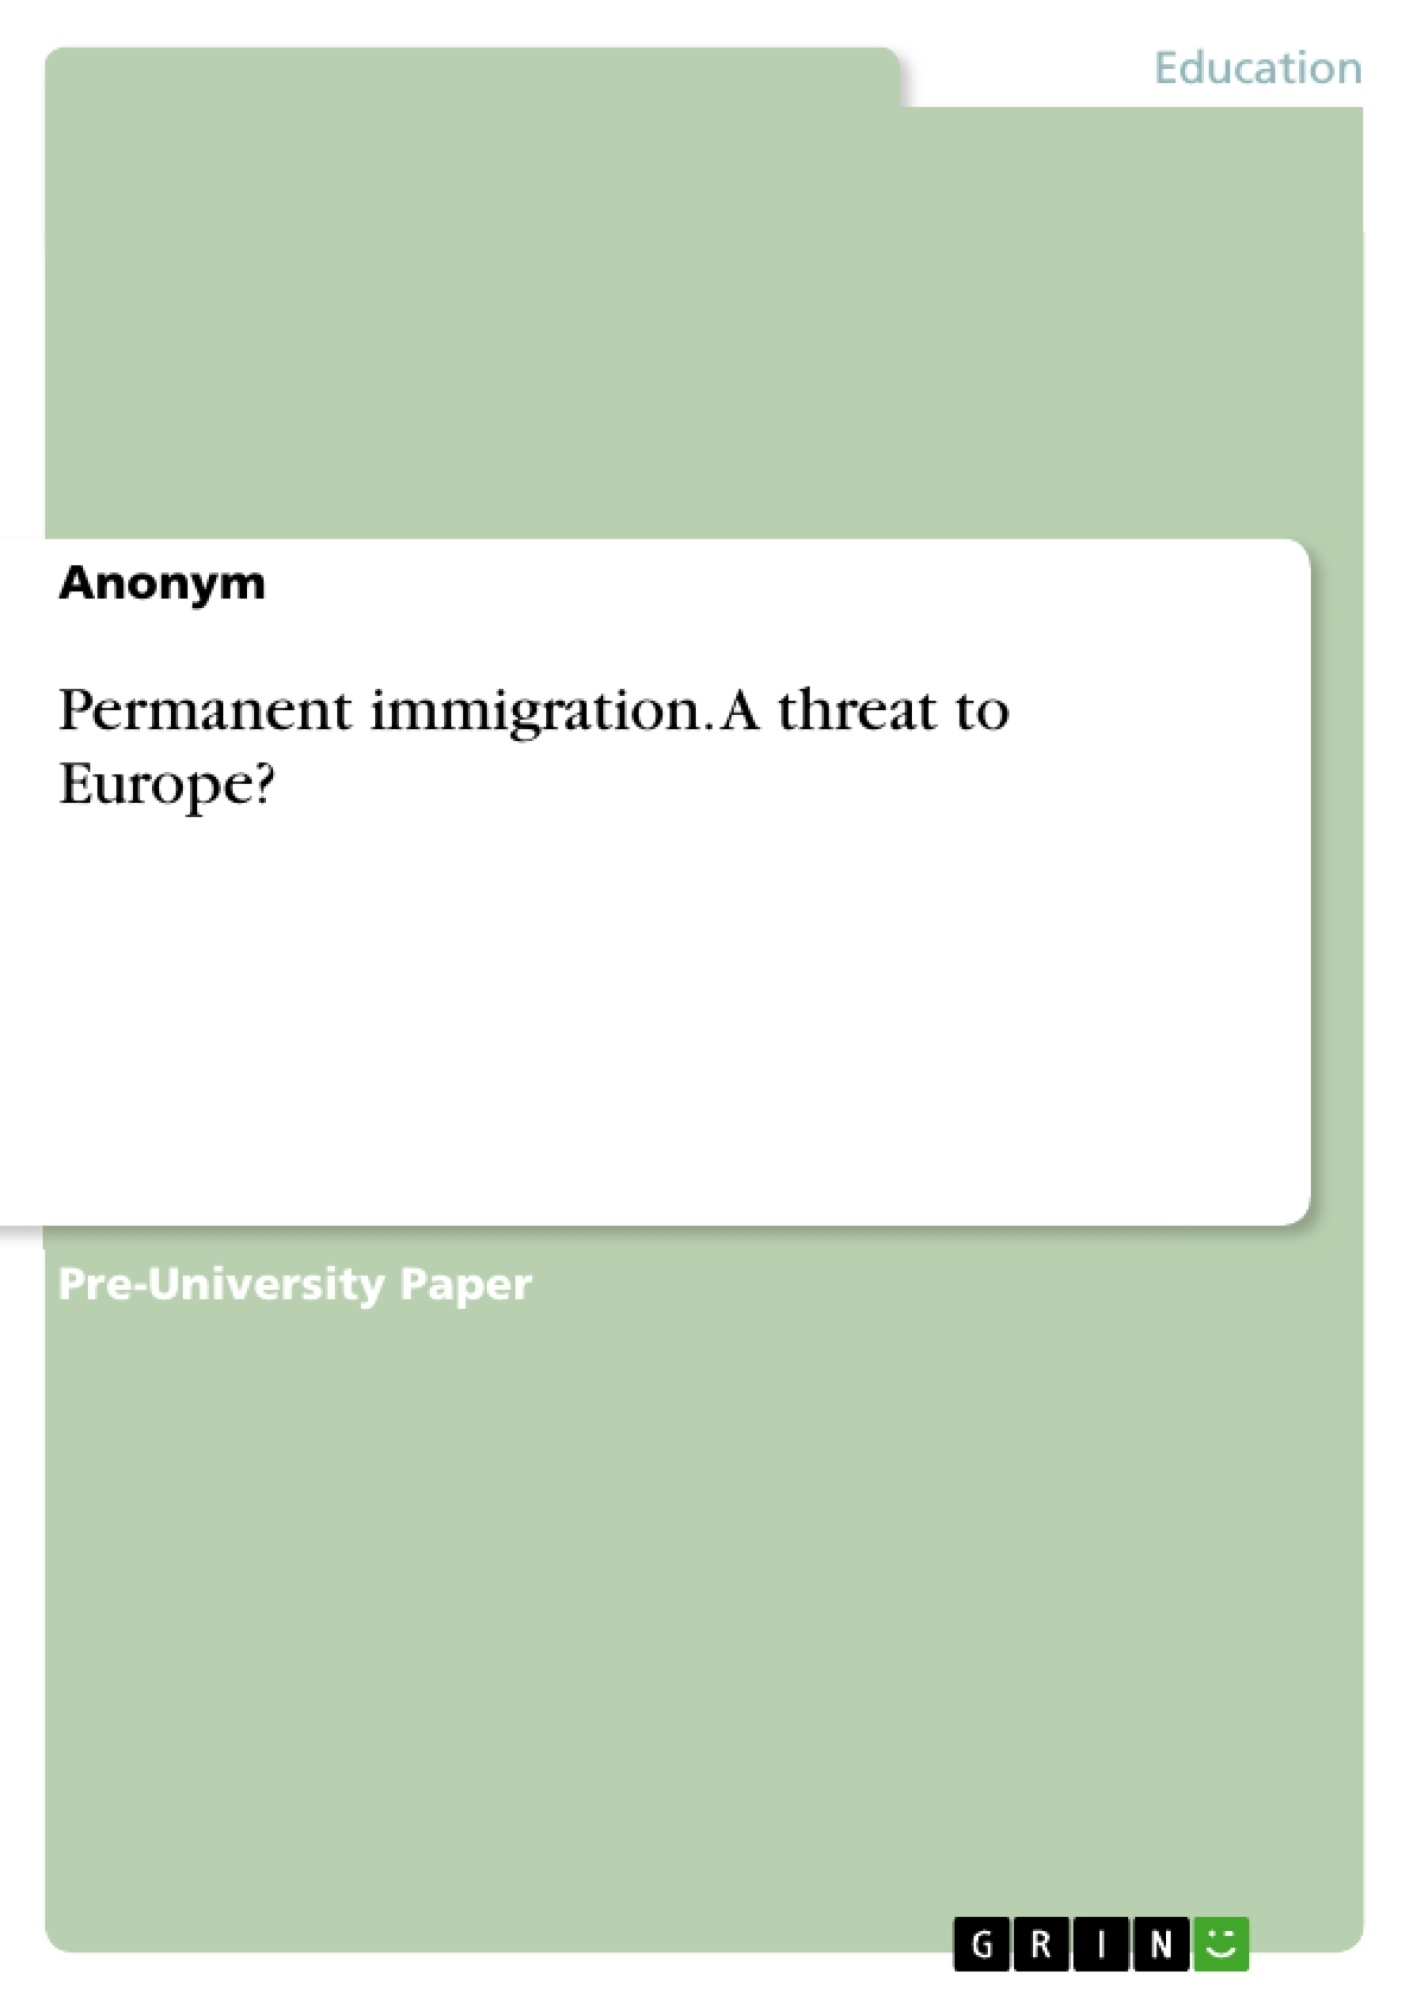 Title: Permanent immigration. A threat to Europe?